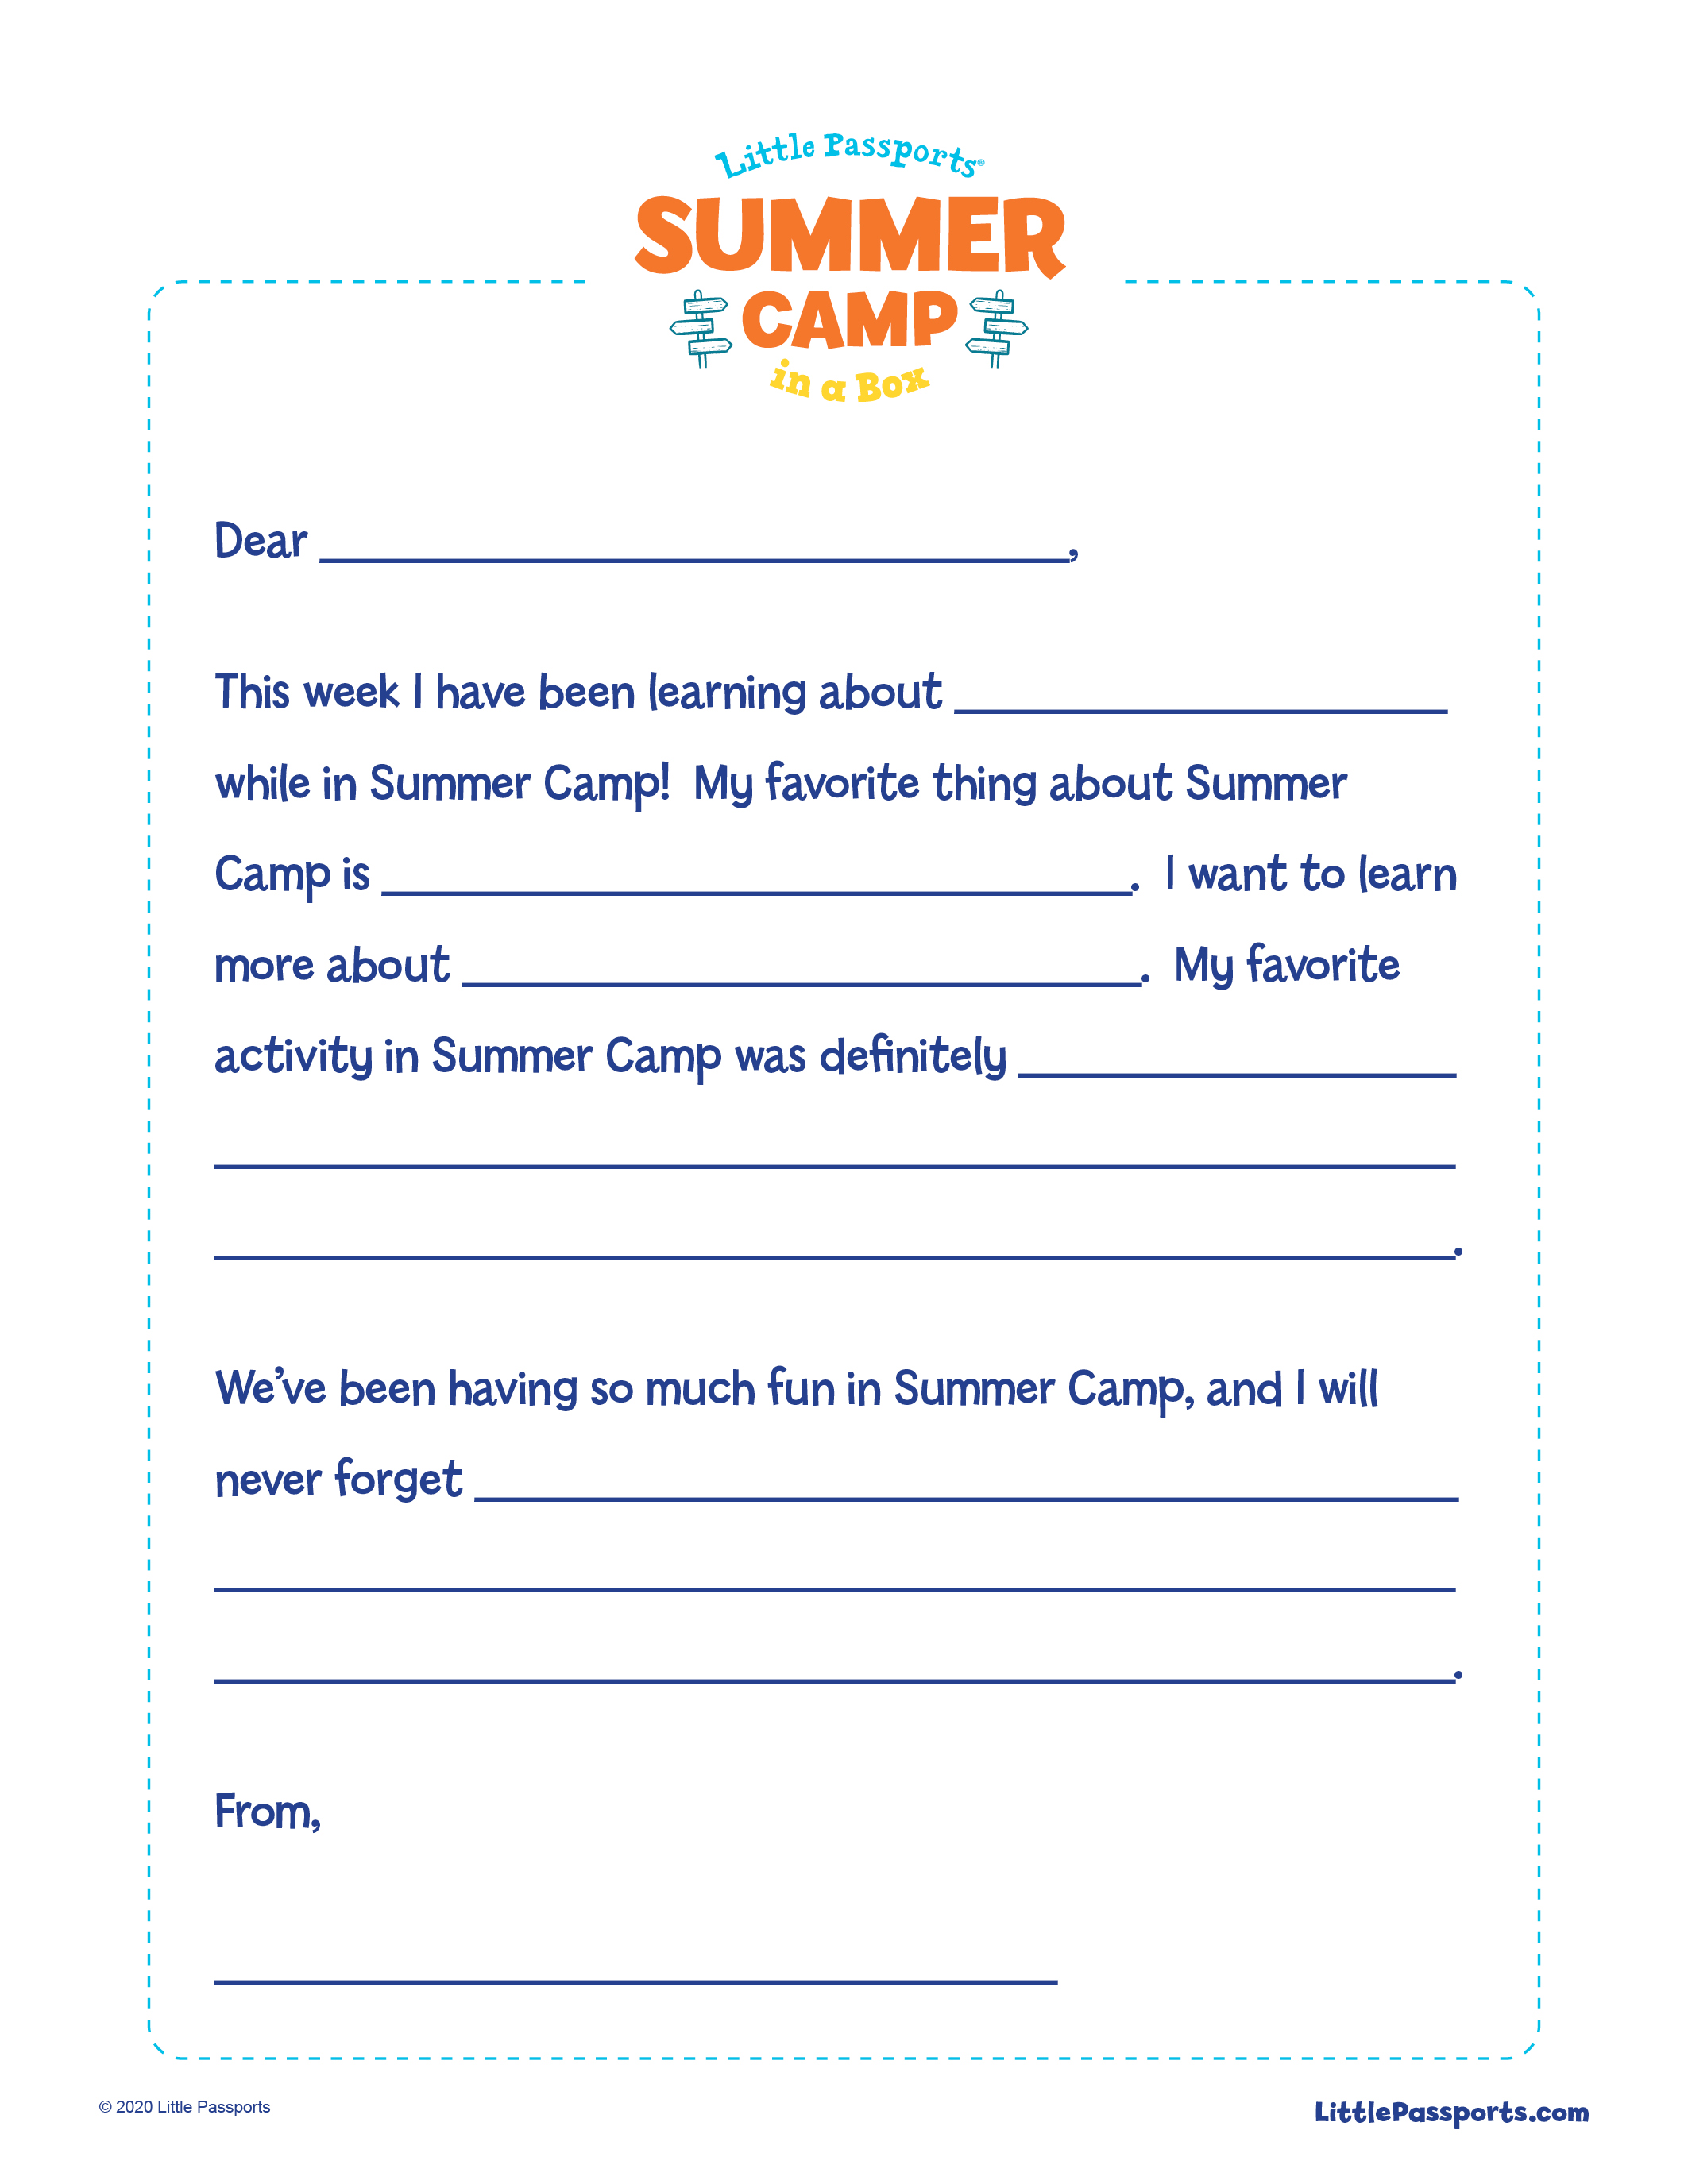 Letter from Camp